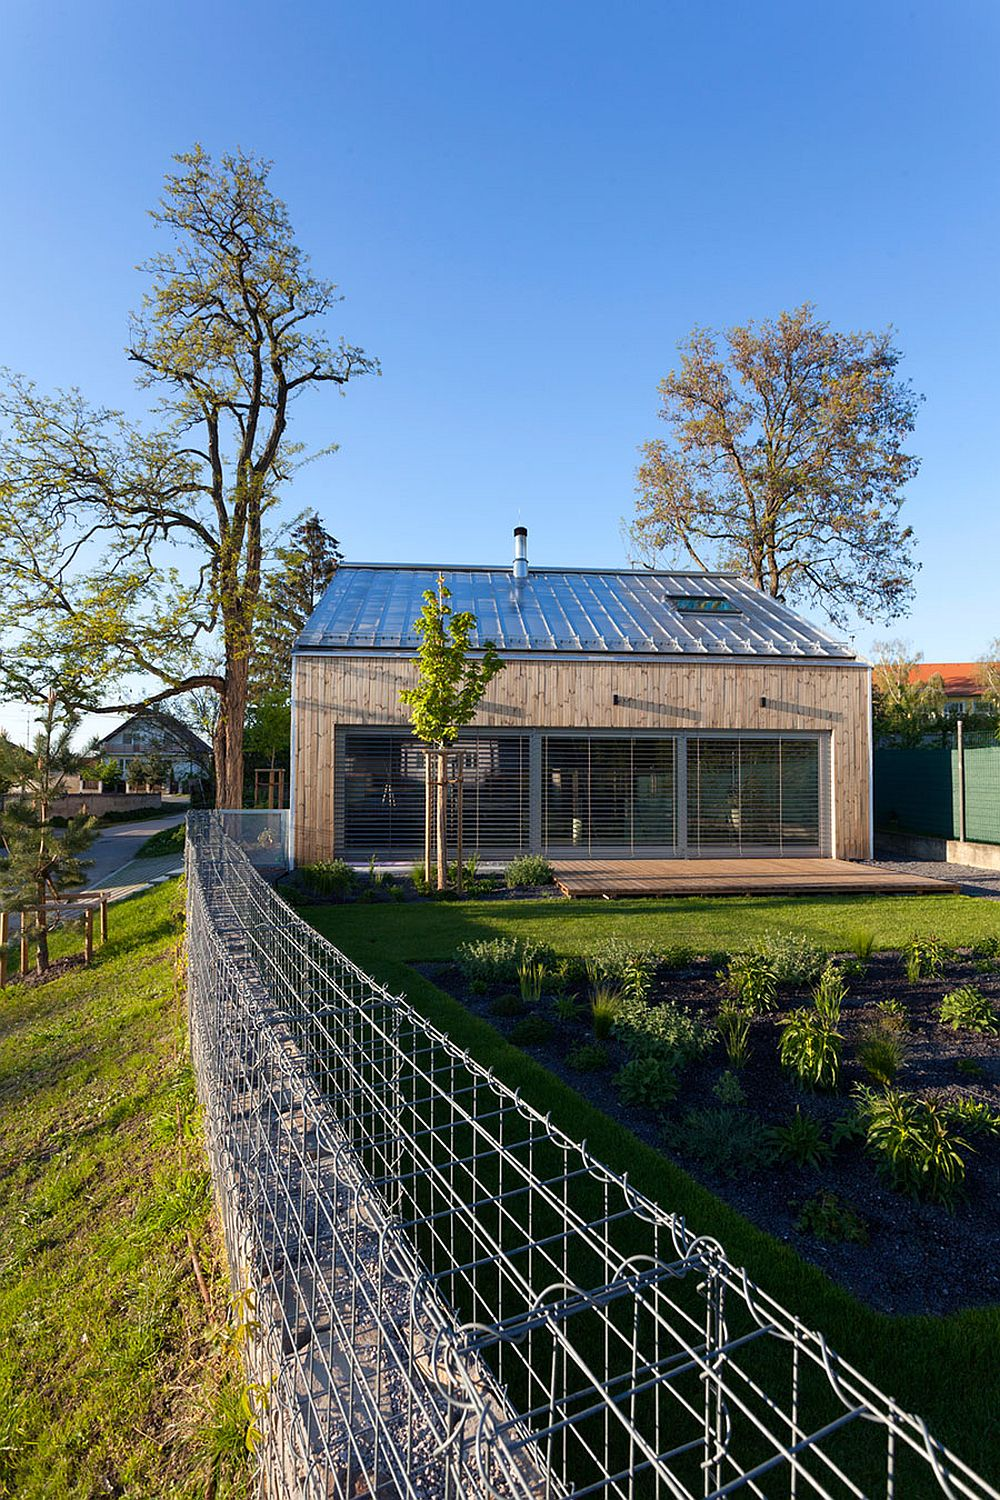 Private garden of the modern home with a wooden deck